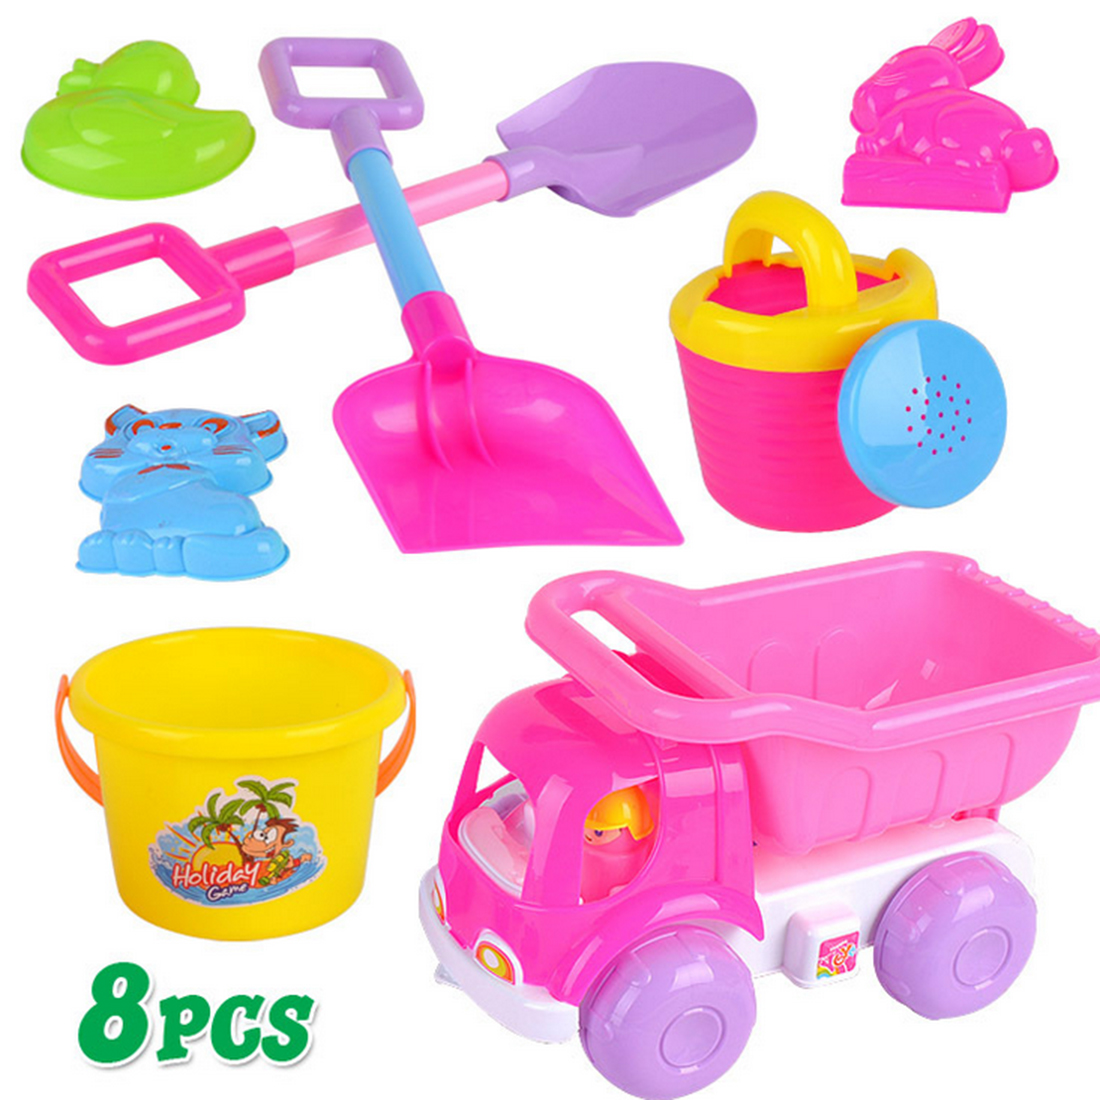 8Pcs Beach Sand Toy Set Beach Buggy Shovels Watering Can Kids Safety Plastic Toys Outdoor Toys For Children - Color Random